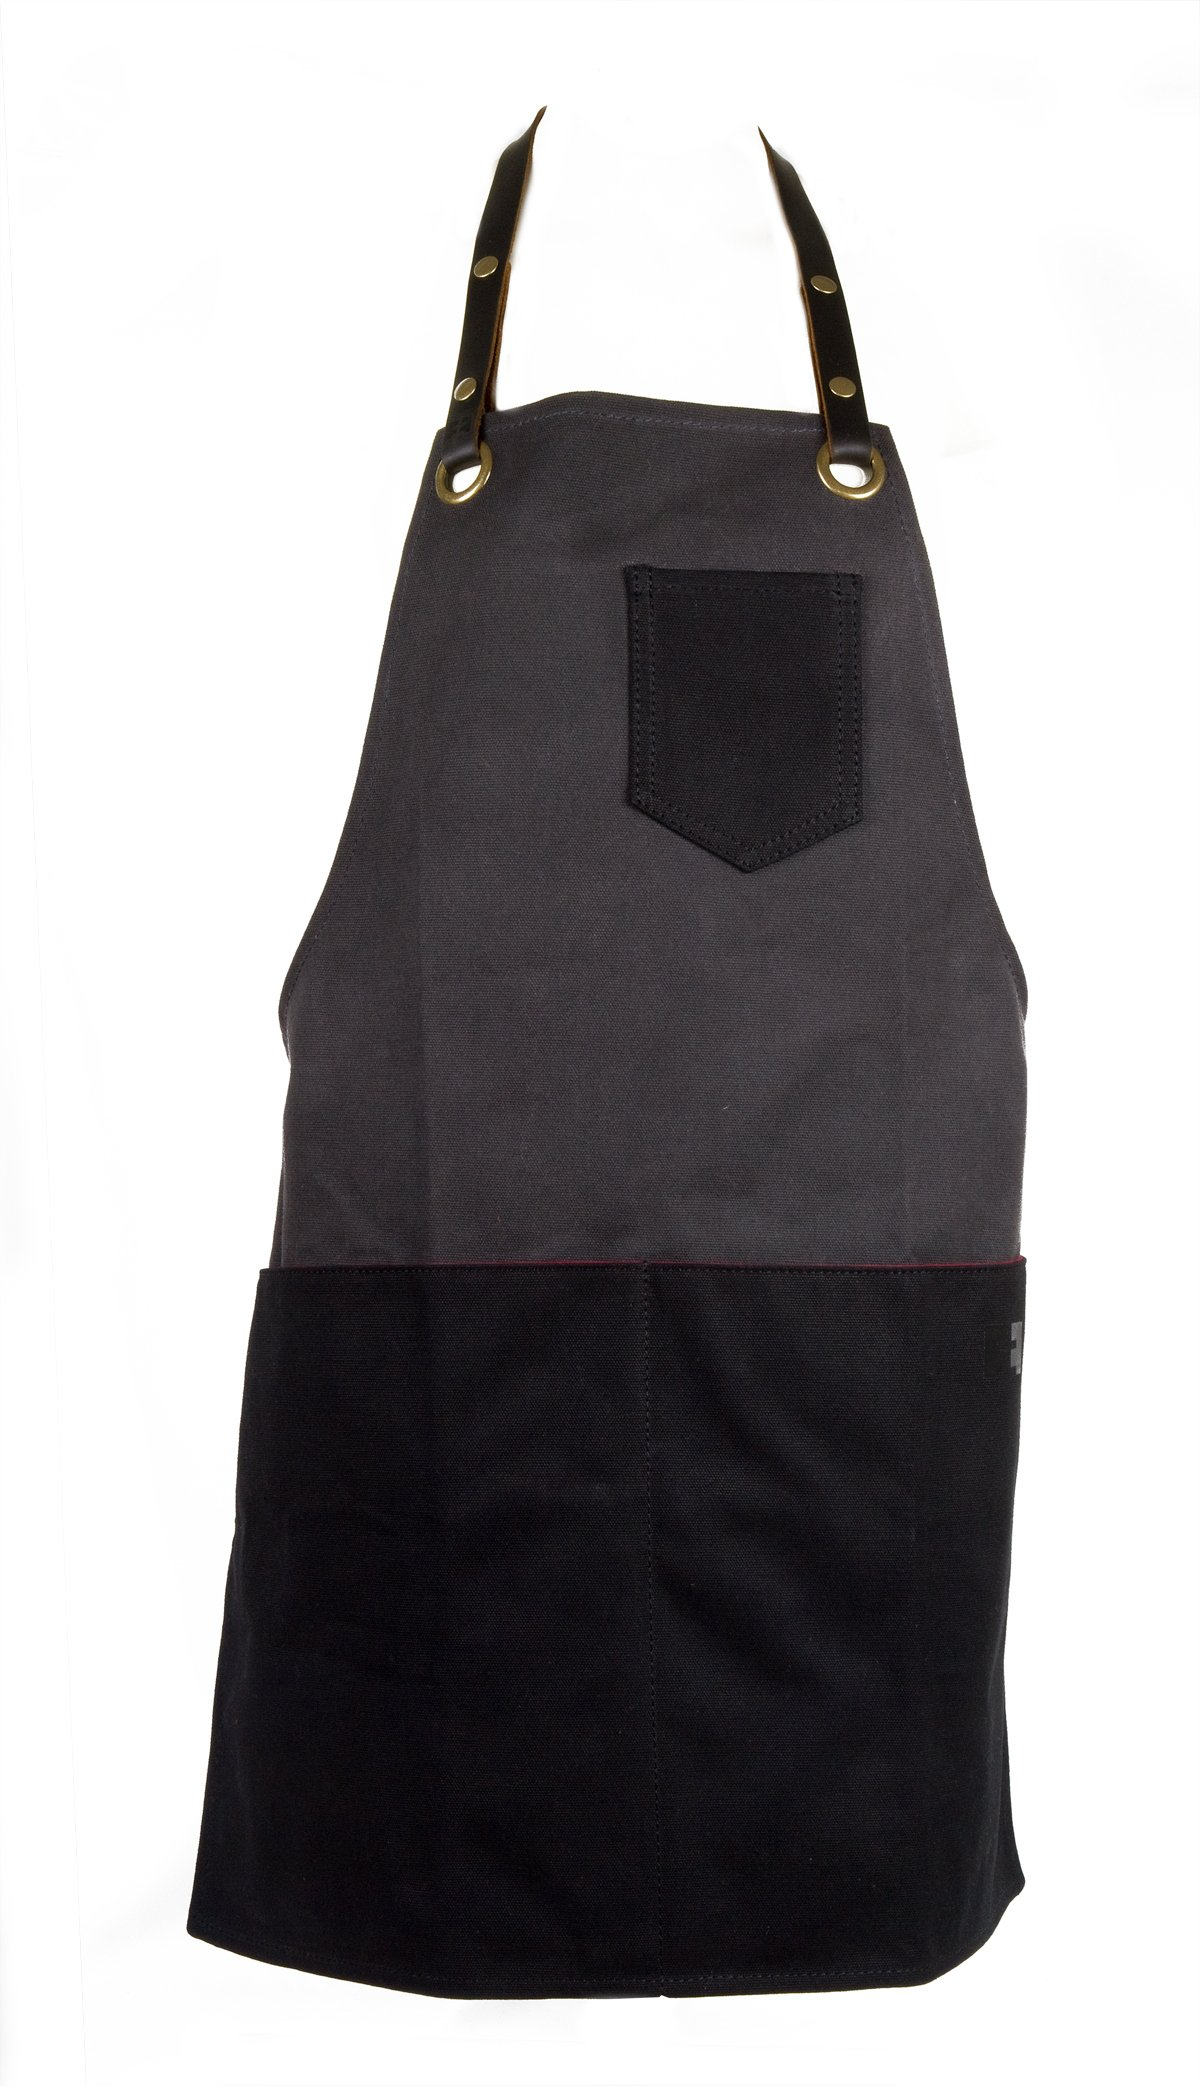 Waxed Cotton Canvas Shop Apron for Chefs, Baristas, Bike or Ski Mechanics, Woodworkers | the Edison Everyday Apron by FAT FELT